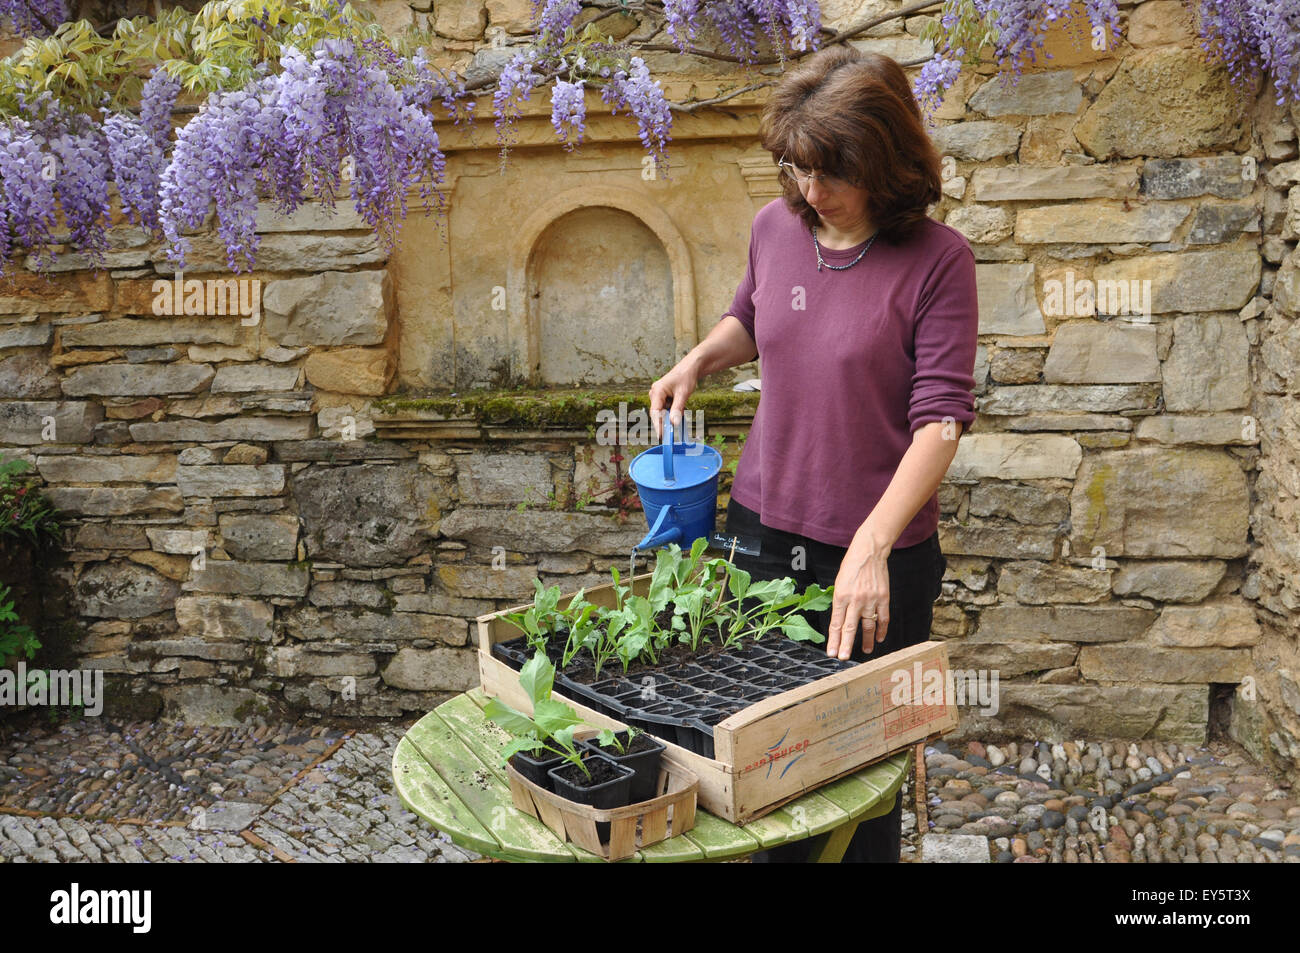 Planning A Kitchen Garden Planning Out Headed Cabbages In A Kitchen Garden Stock Photo